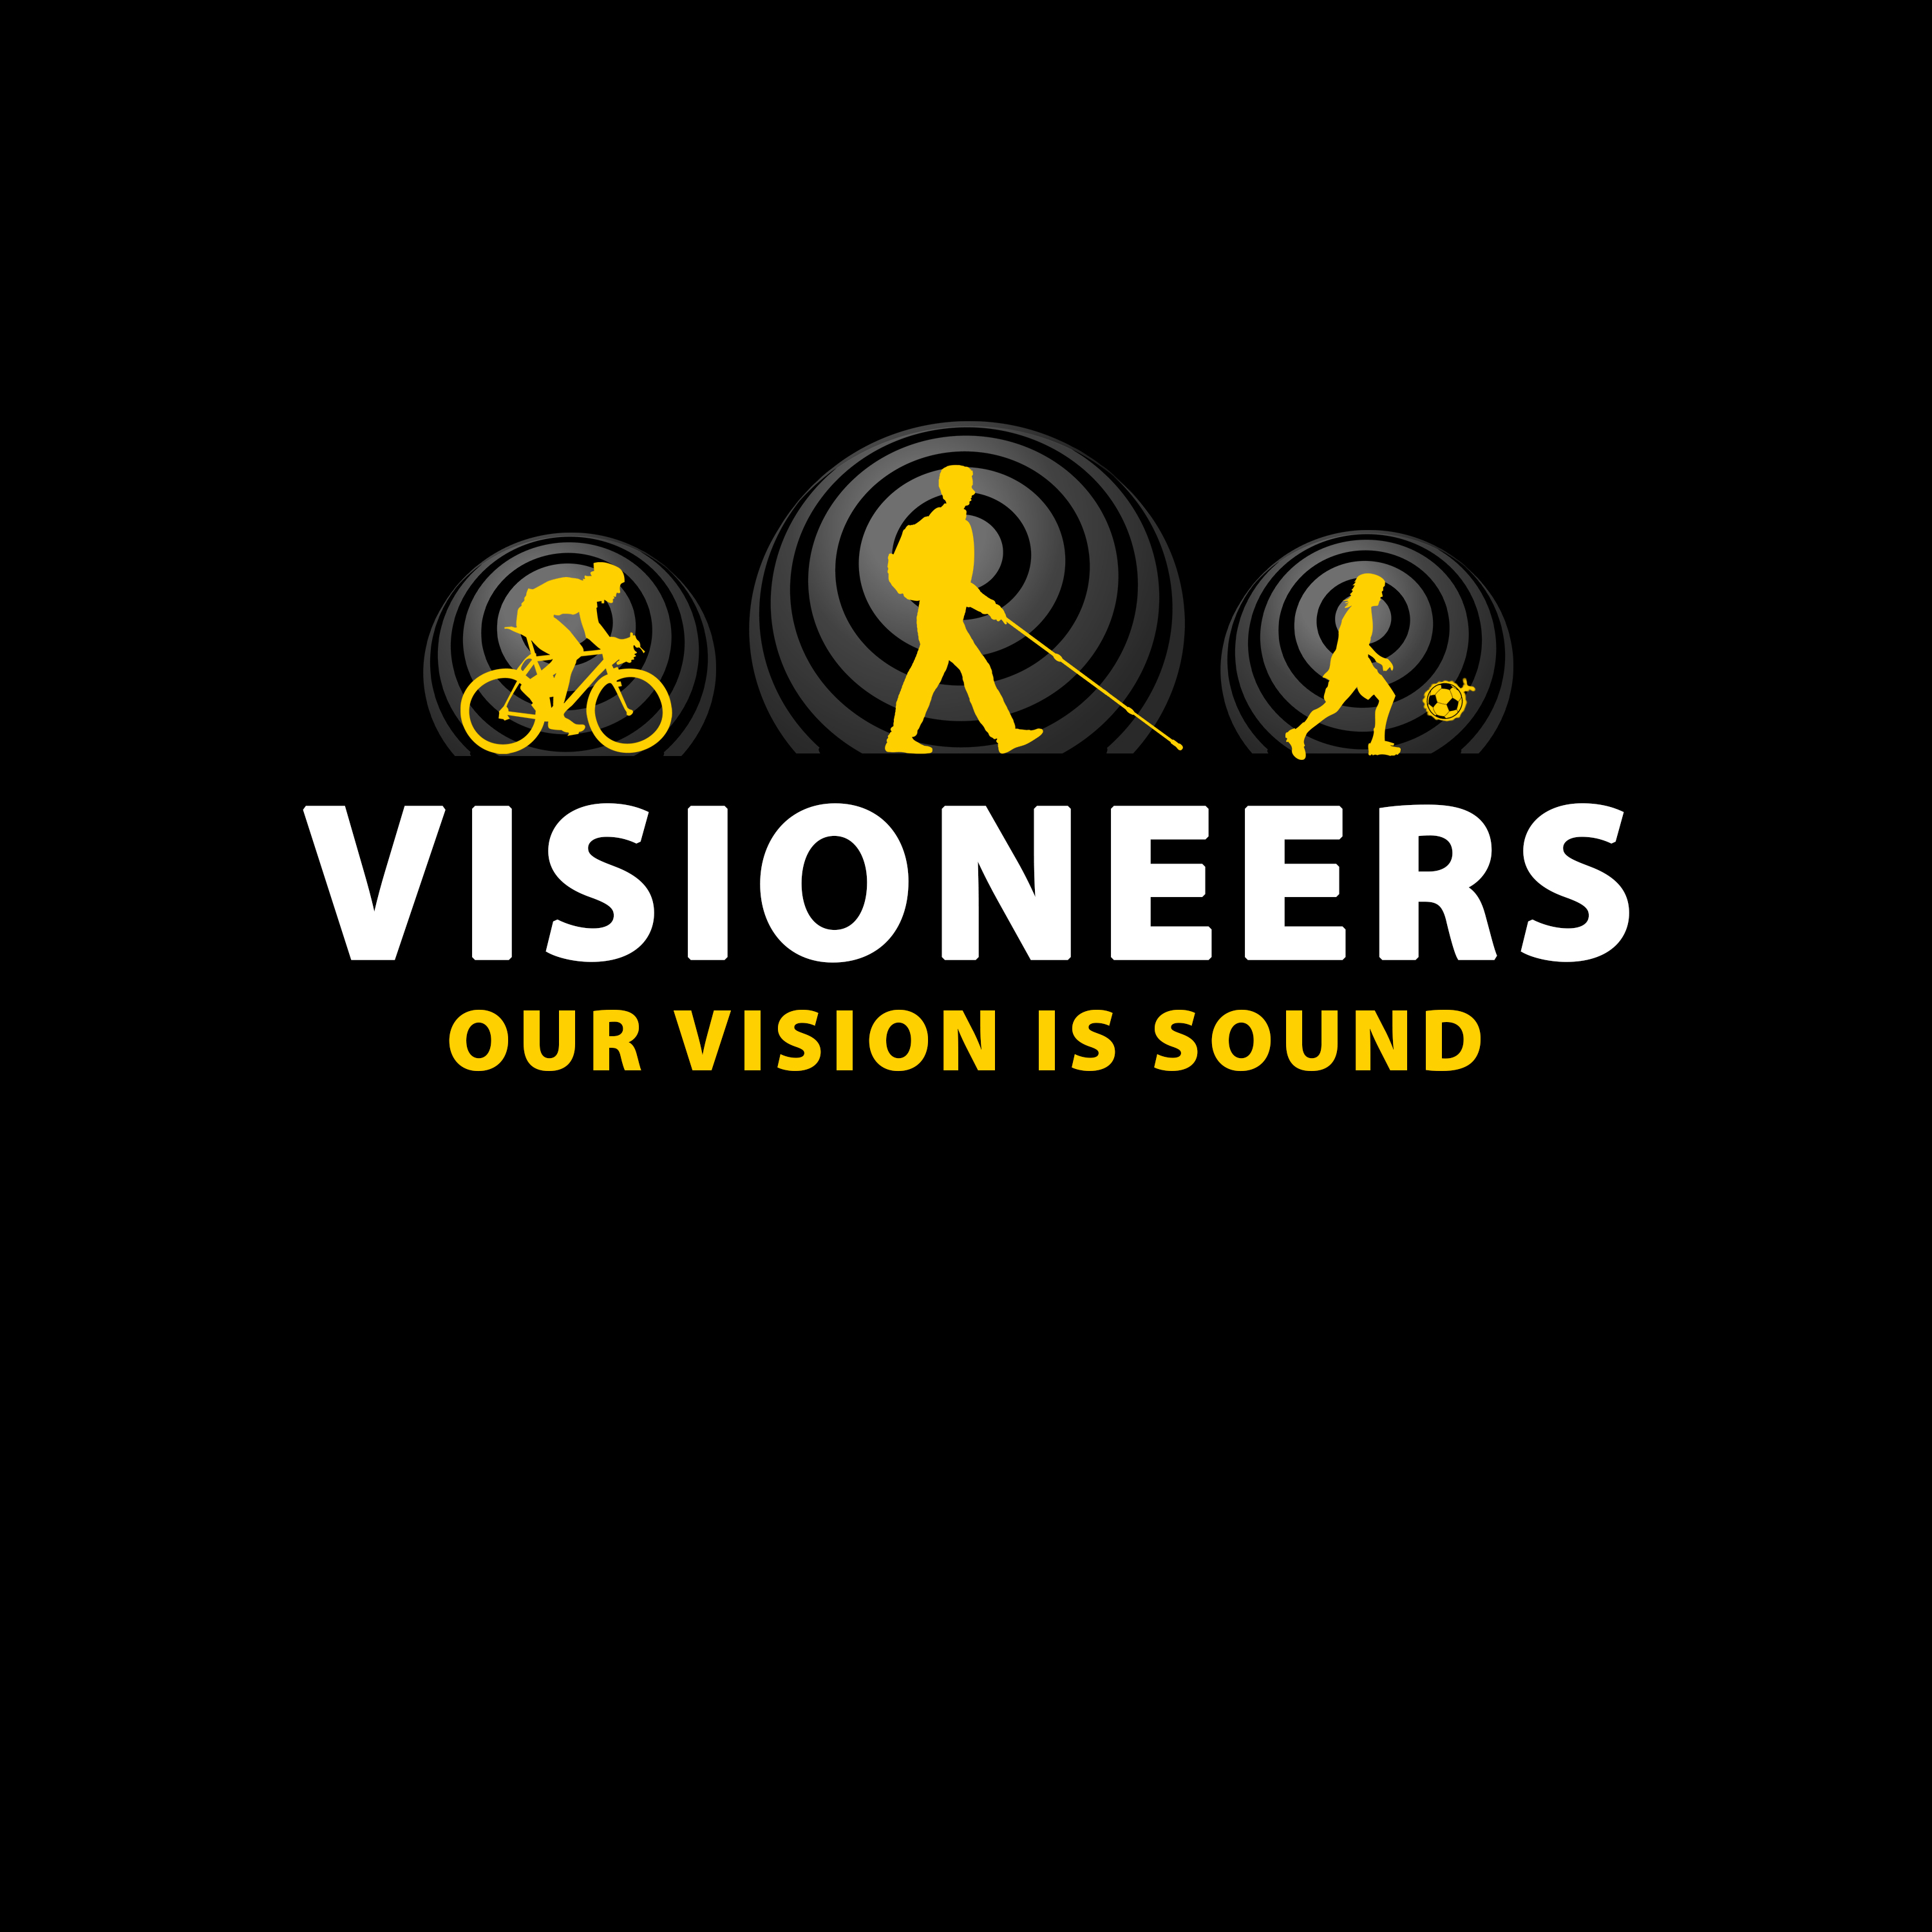 Visioneers 5. SAme as previous panel but with yellow Daniel silhouette and no V dots.